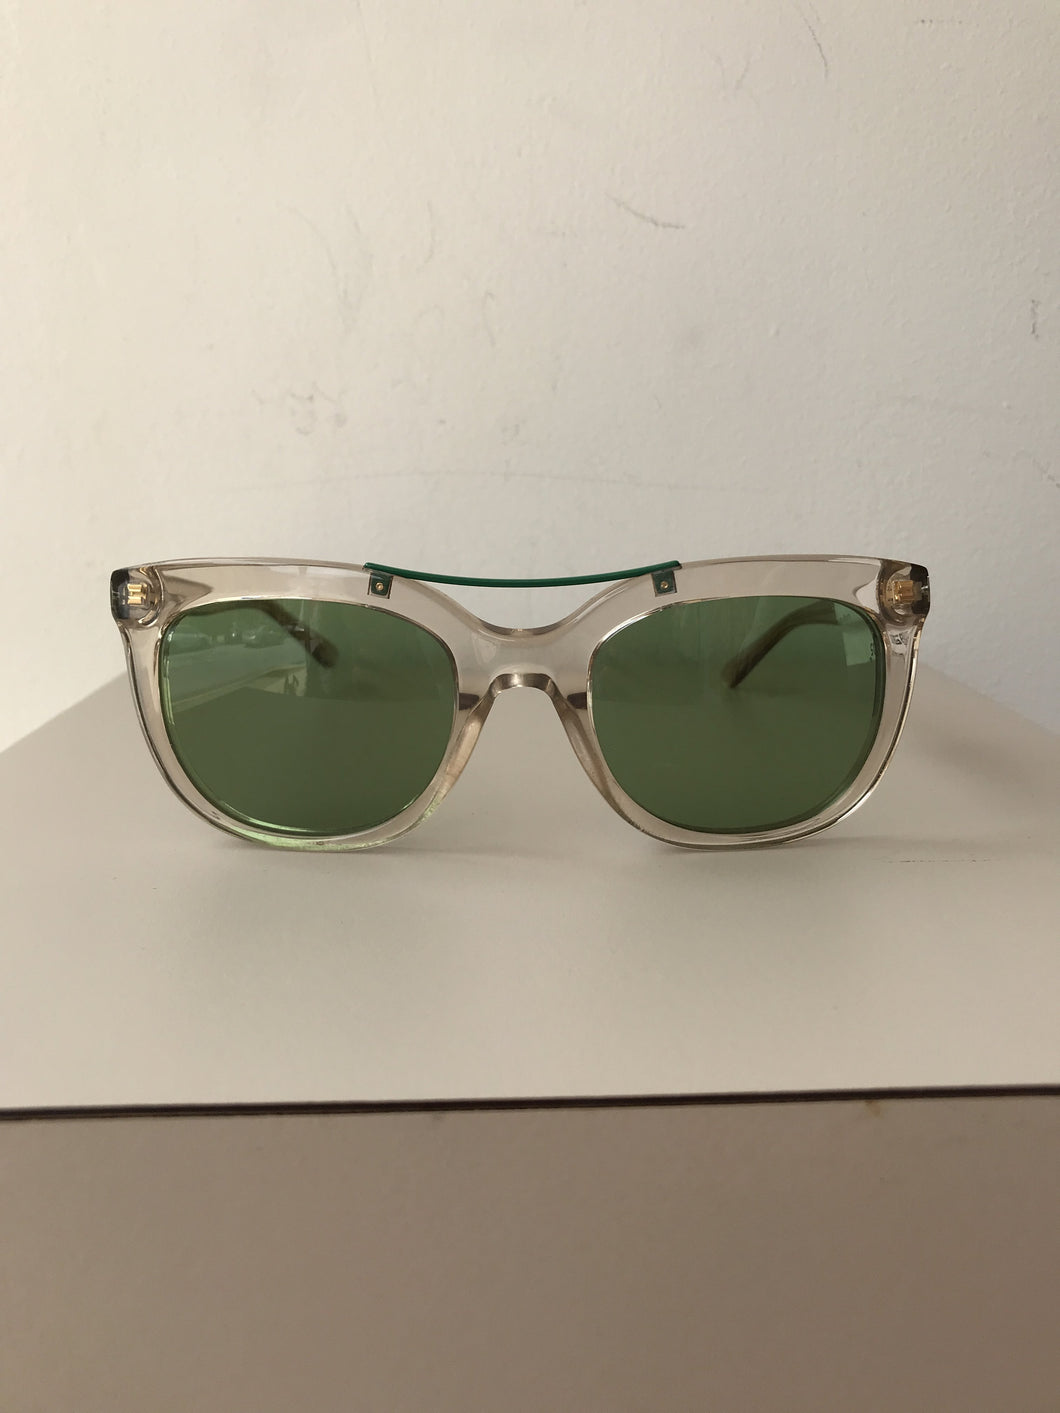 Tory Burch tan and green sunglasses TY7105 - My Girlfriend's Wardrobe York Pa